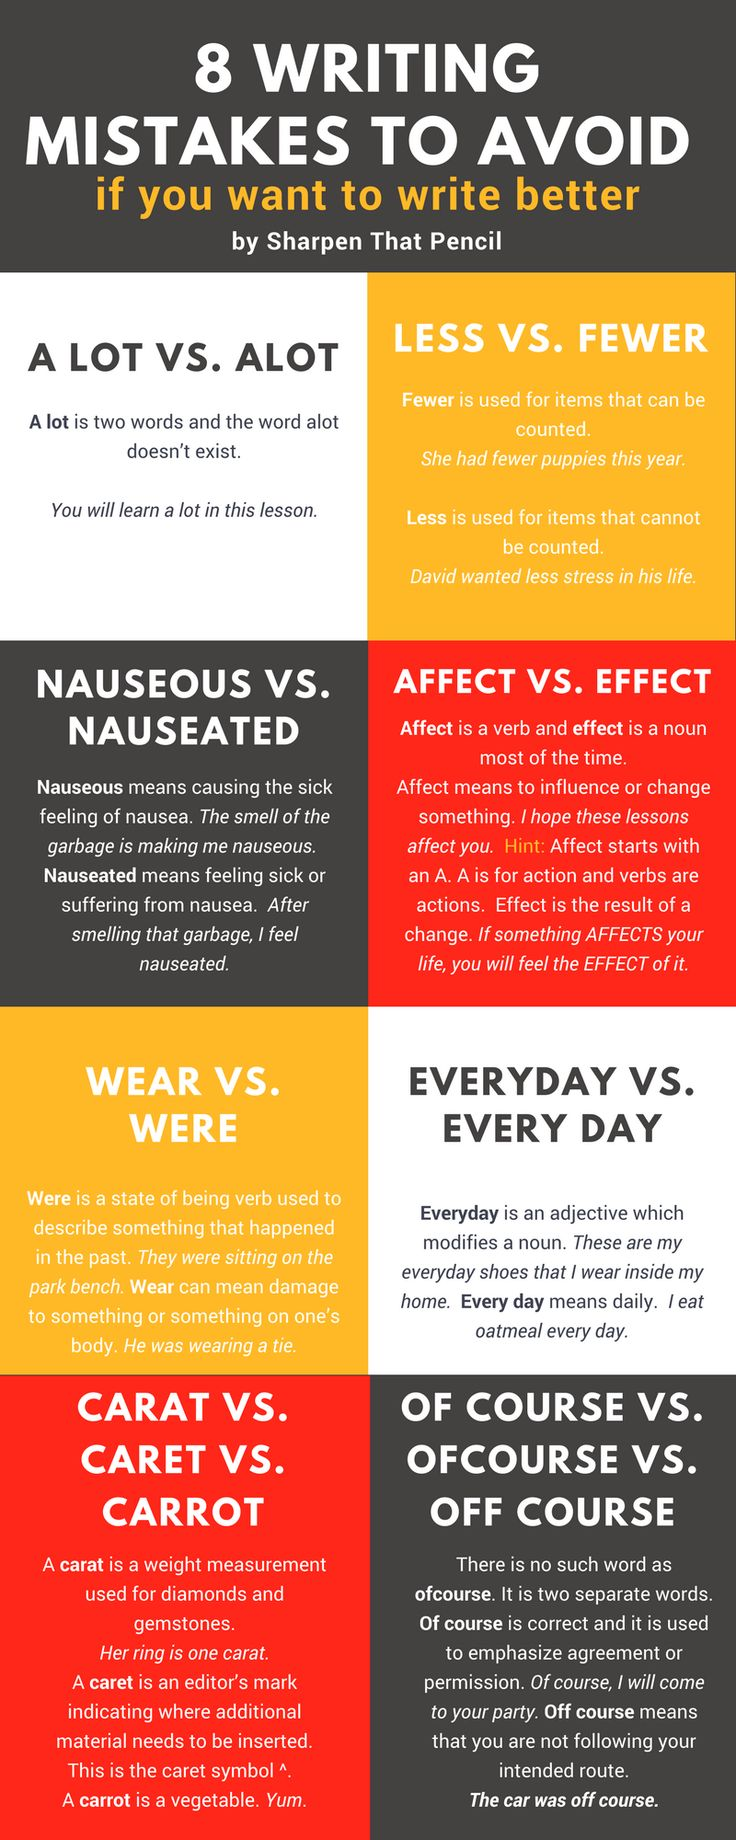 Writing mistakes can change your writing dramatically. Avoid these common writing mistakes.  #writing #writingtips #blogging